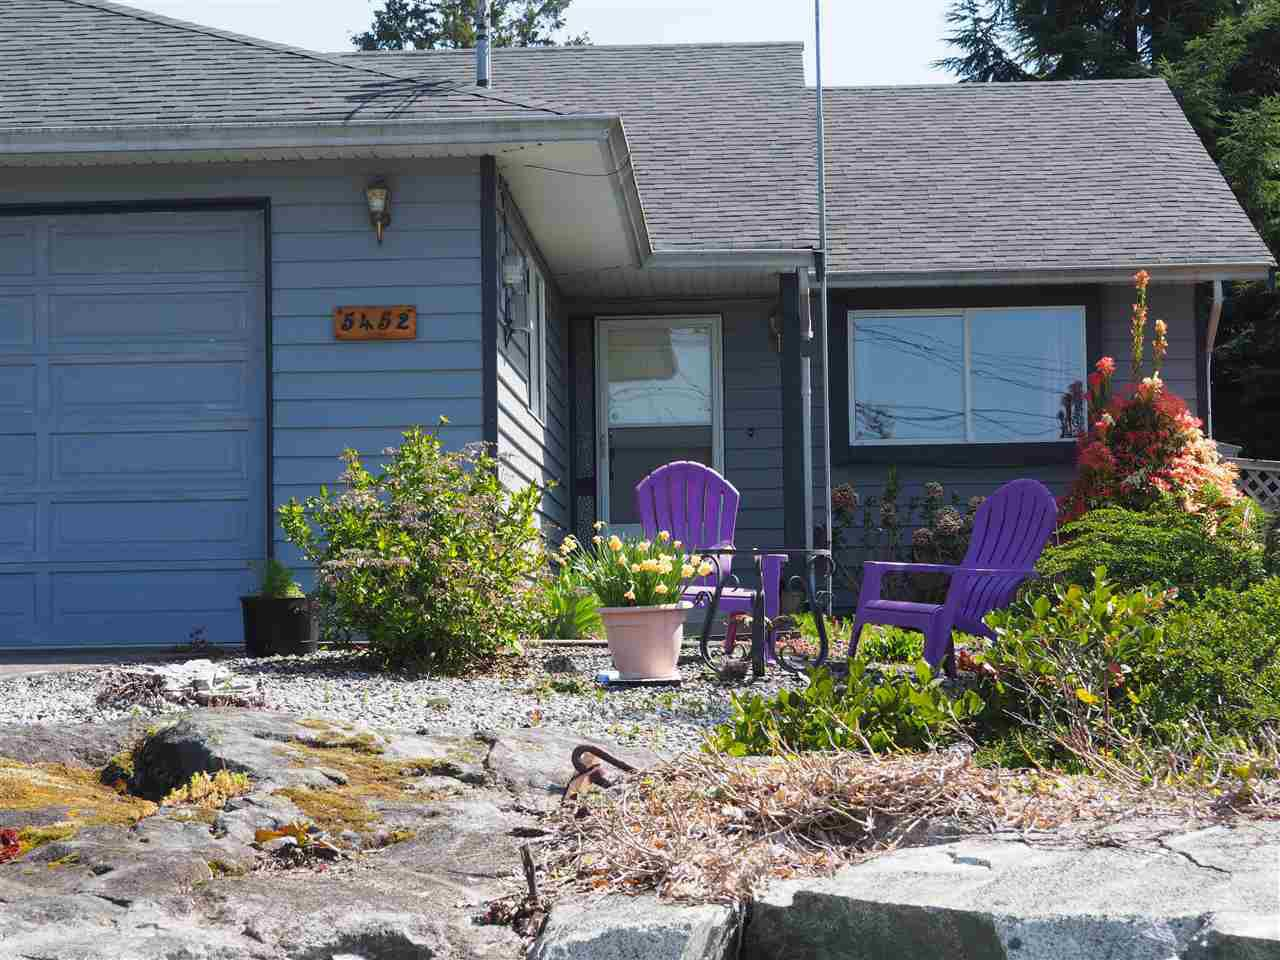 "Main Photo: 5452 KENSINGTON Road in Sechelt: Sechelt District House for sale in ""West Sechelt"" (Sunshine Coast)  : MLS®# R2261374"